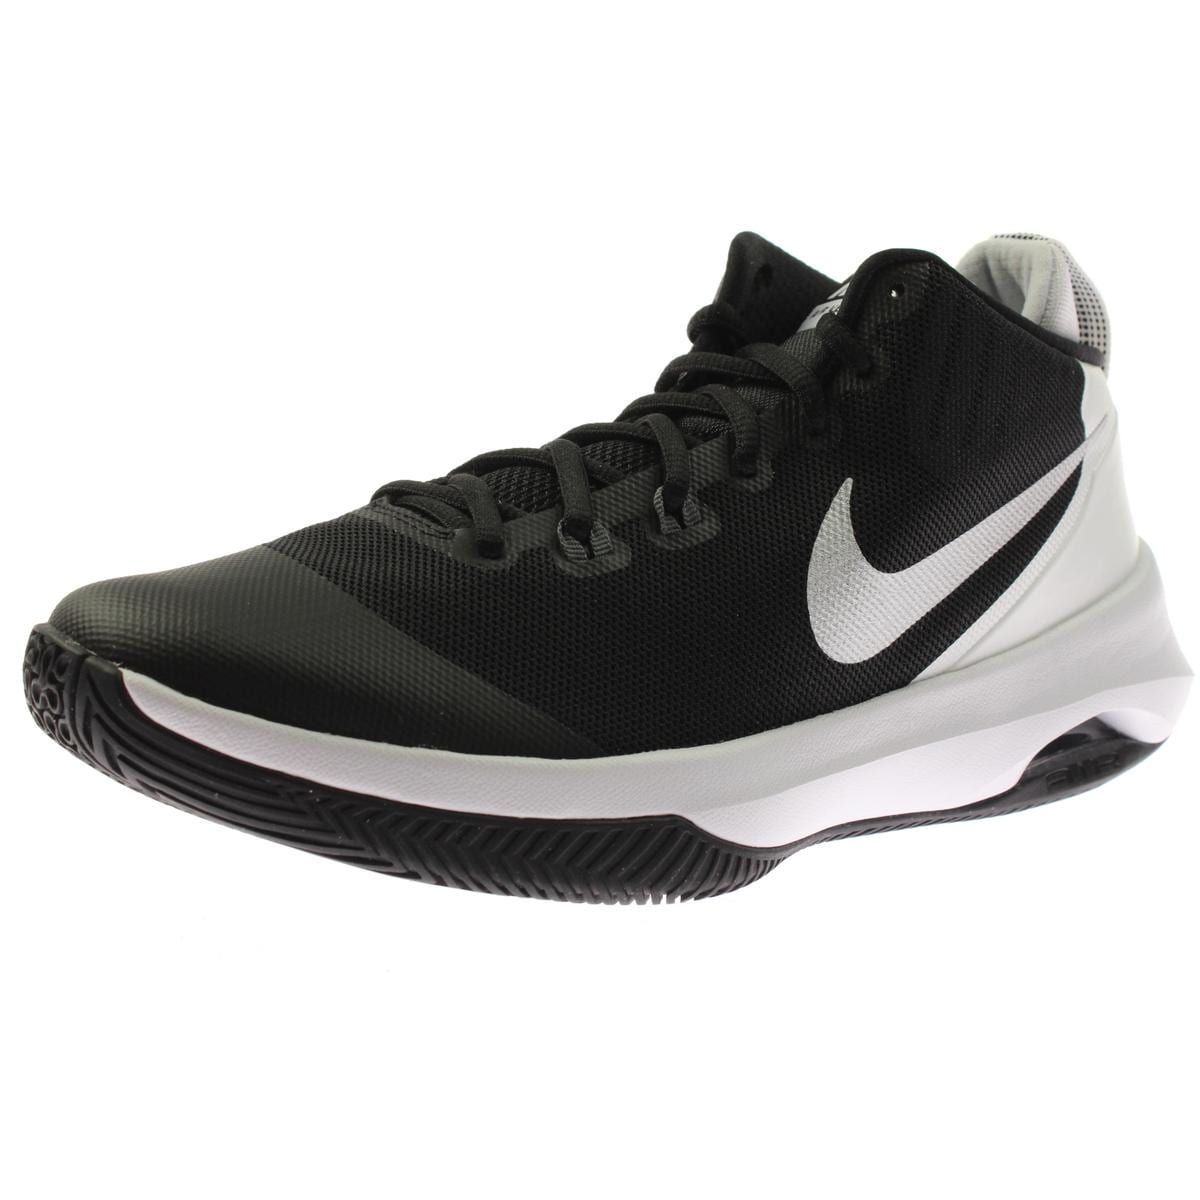 b06df7642be6 Shop Nike Womens Air Versitile Basketball Shoes Mesh Lightweight - Free  Shipping On Orders Over  45 - Overstock - 13950476